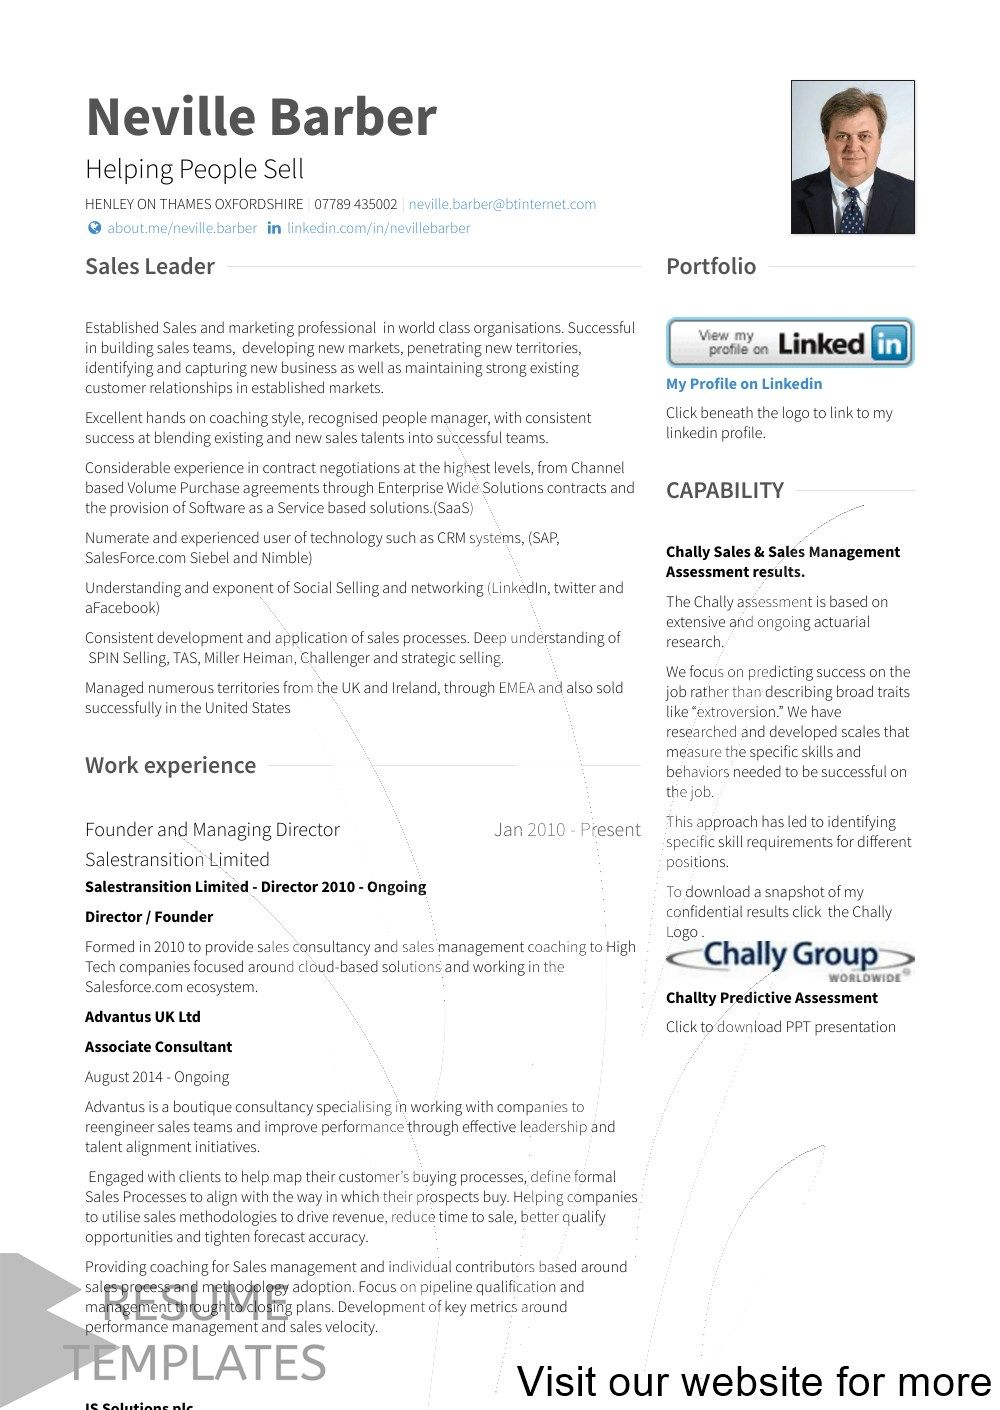 Resume Template Download For Freshers In 2020 Downloadable Resume Template Resume Template Resume Template Free